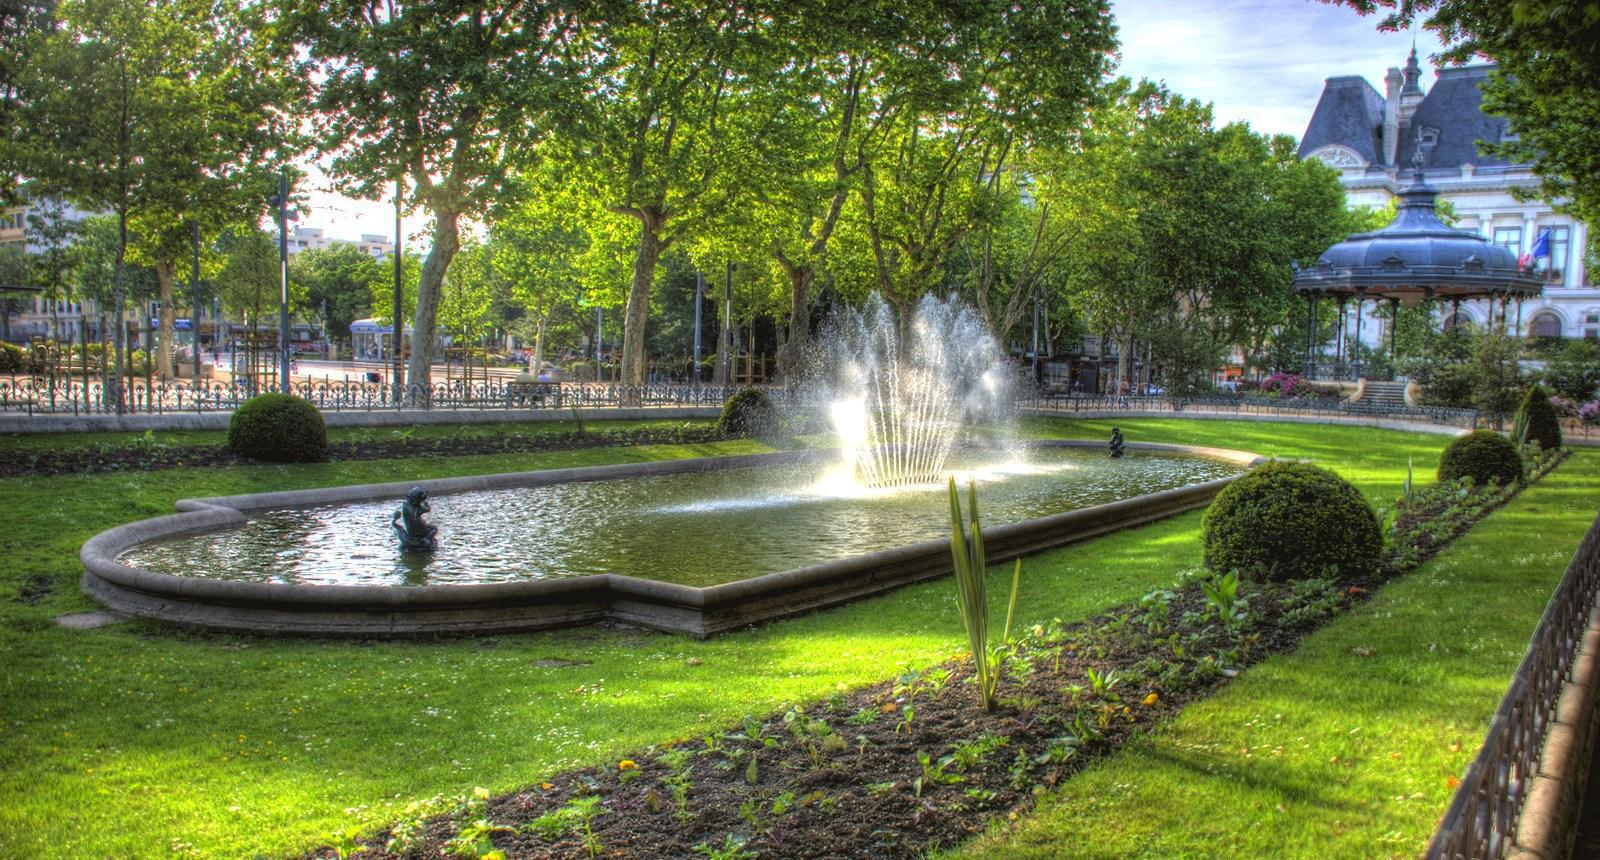 Visite de la ville de saint etienne s jour week end tourisme guide et photos - Amenagement jardin d saint etienne ...